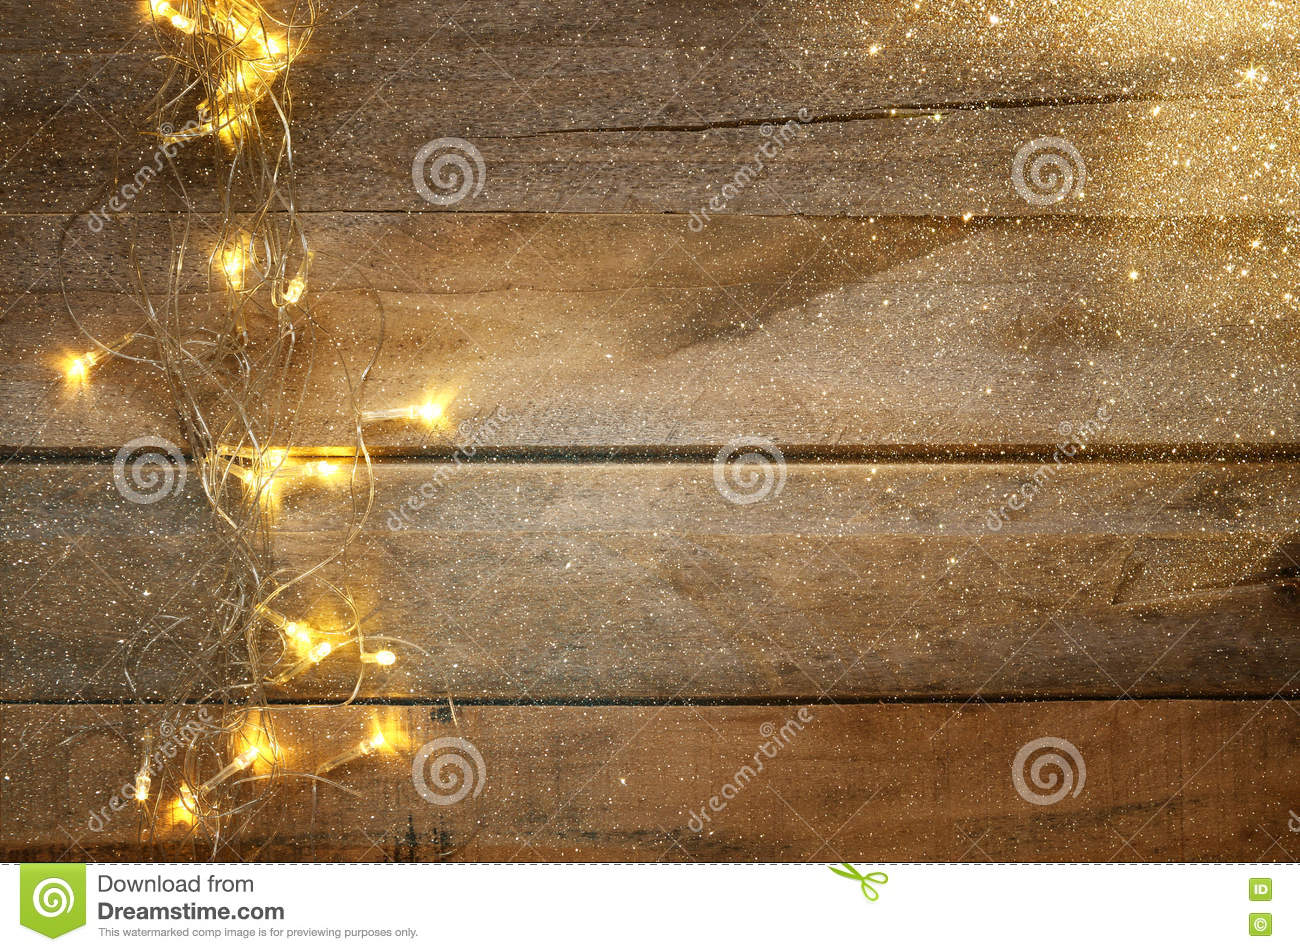 Christmas warm gold garland lights on wooden rustic background